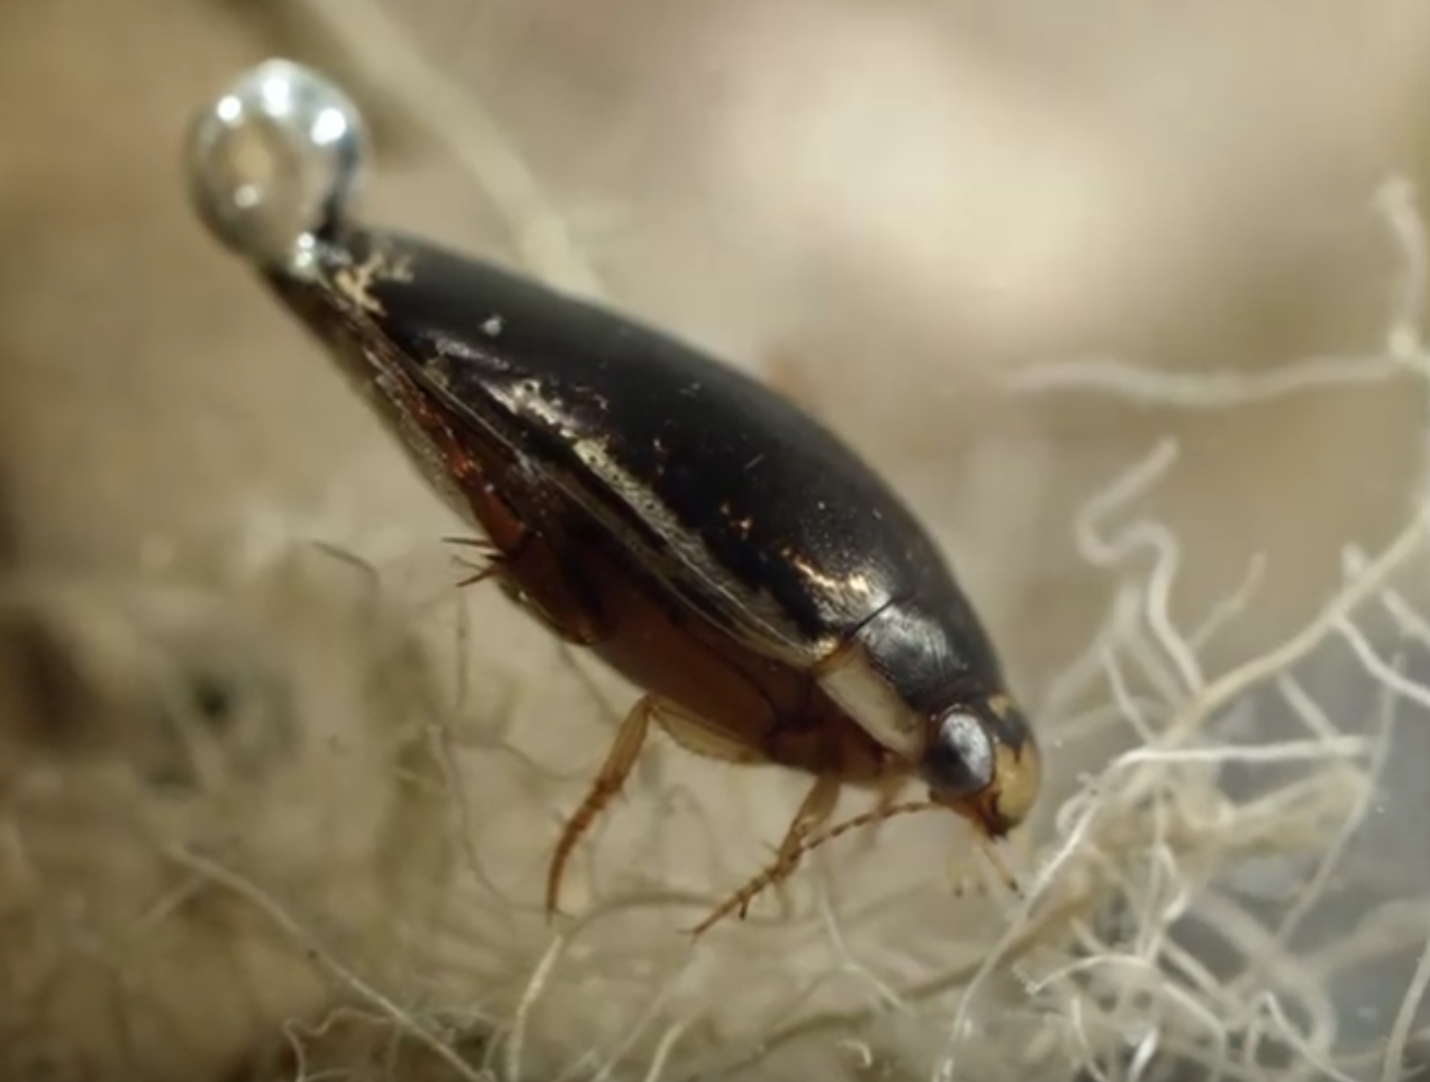 An example of a diving beetle, which brings air bubbles down with it as it hunts under water.